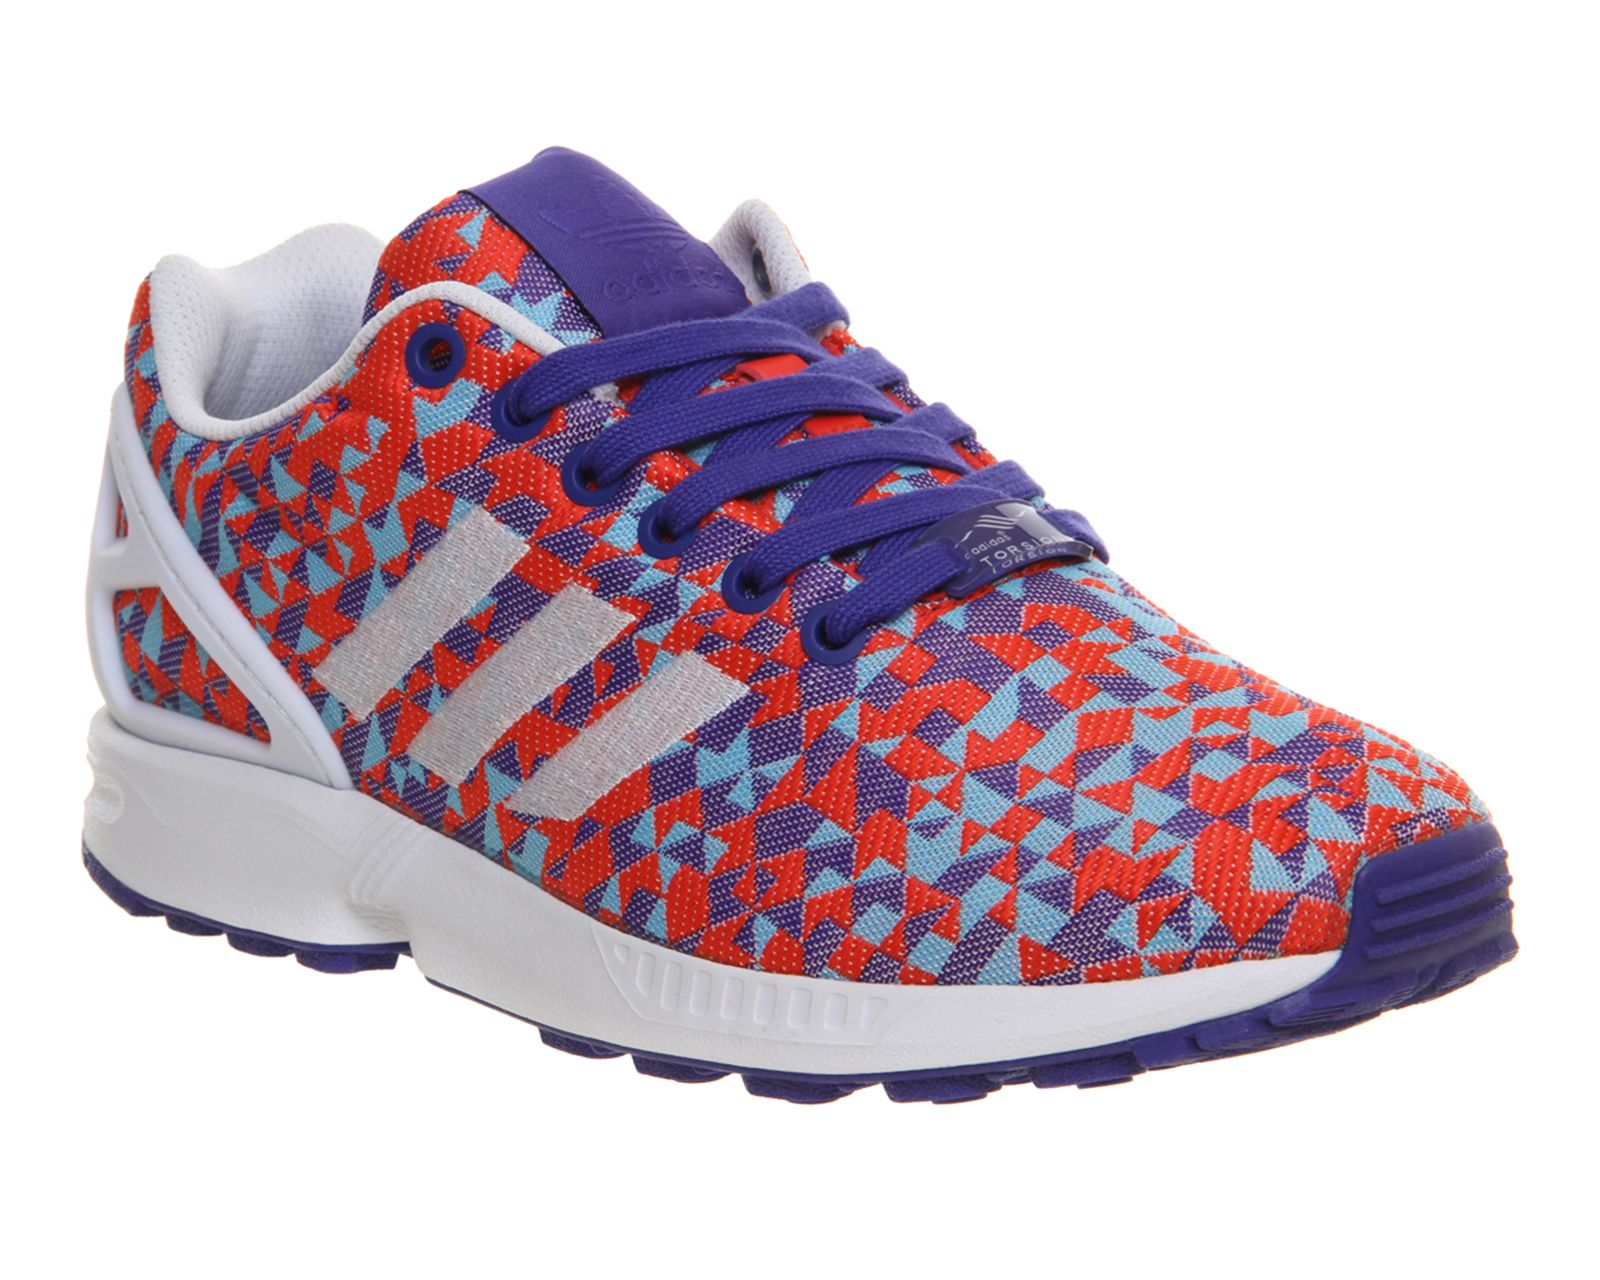 newest 3b8f1 7f13b ... australia adidas zx flux weave night flash white black unisex sports  60f02 258e2